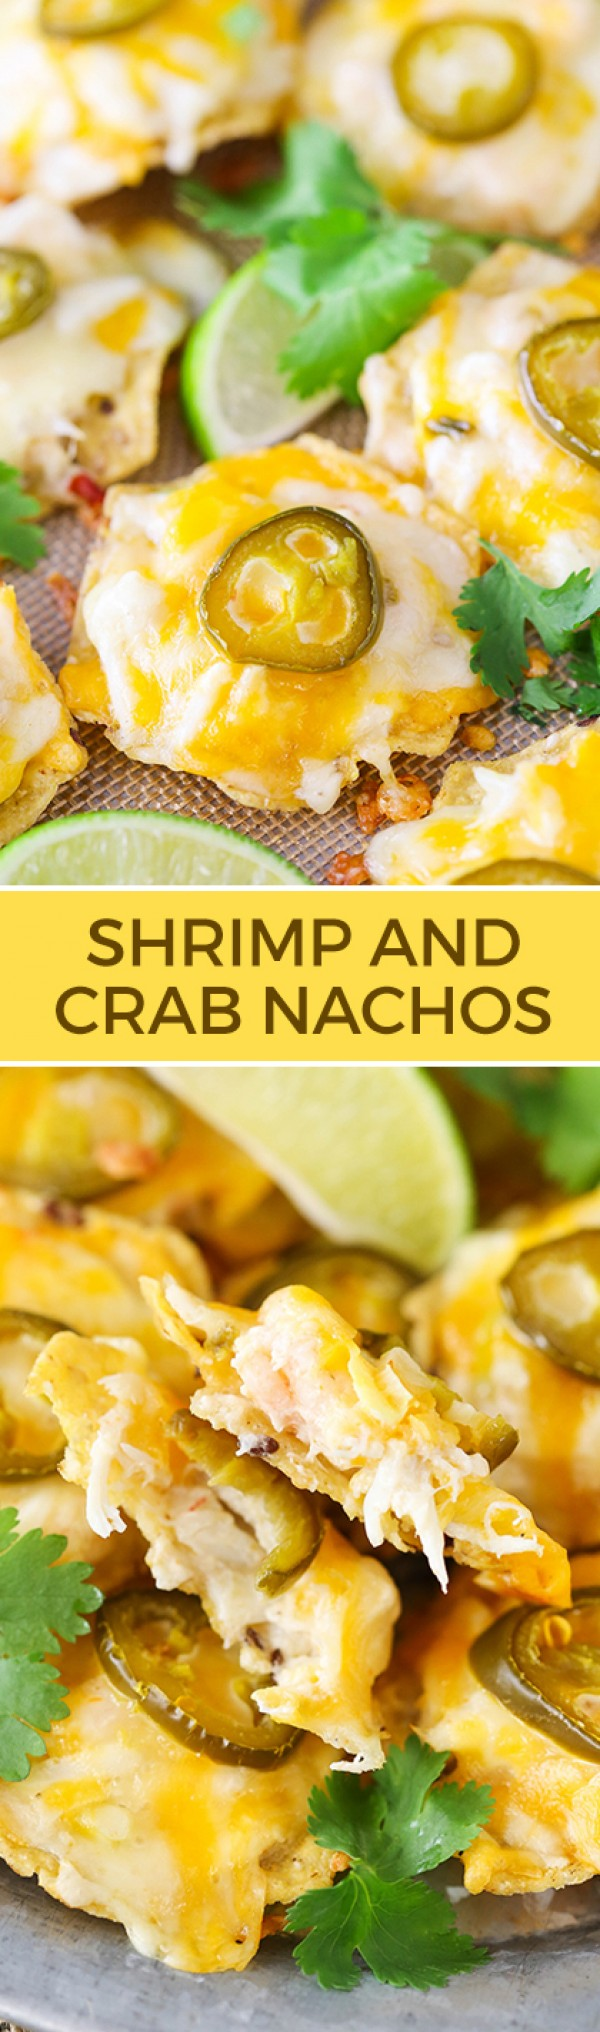 Get the recipe Shrimp and Crab Nachos @recipes_to_go